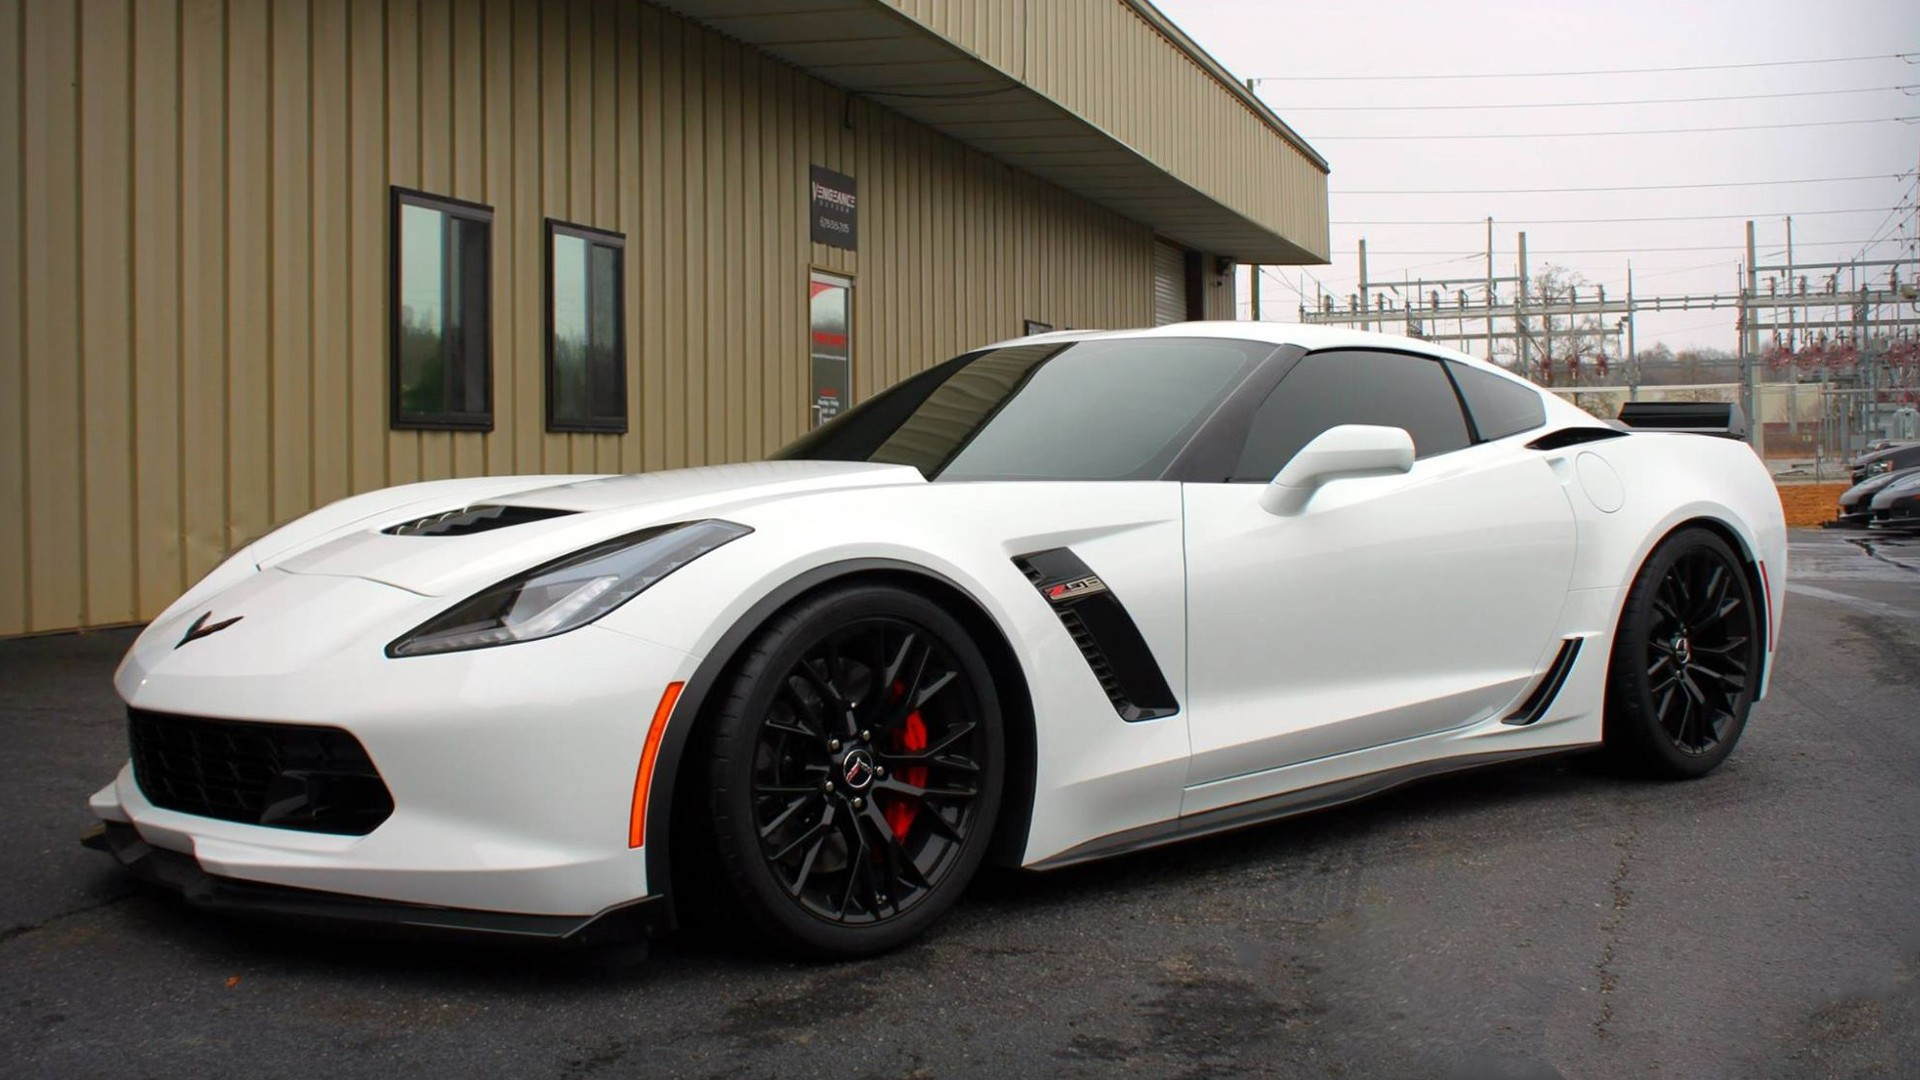 1920x1080 Corvette C7 Z06, Car, Vehicle, White Cars Wallpapers HD / Desktop and  Mobile Backgrounds